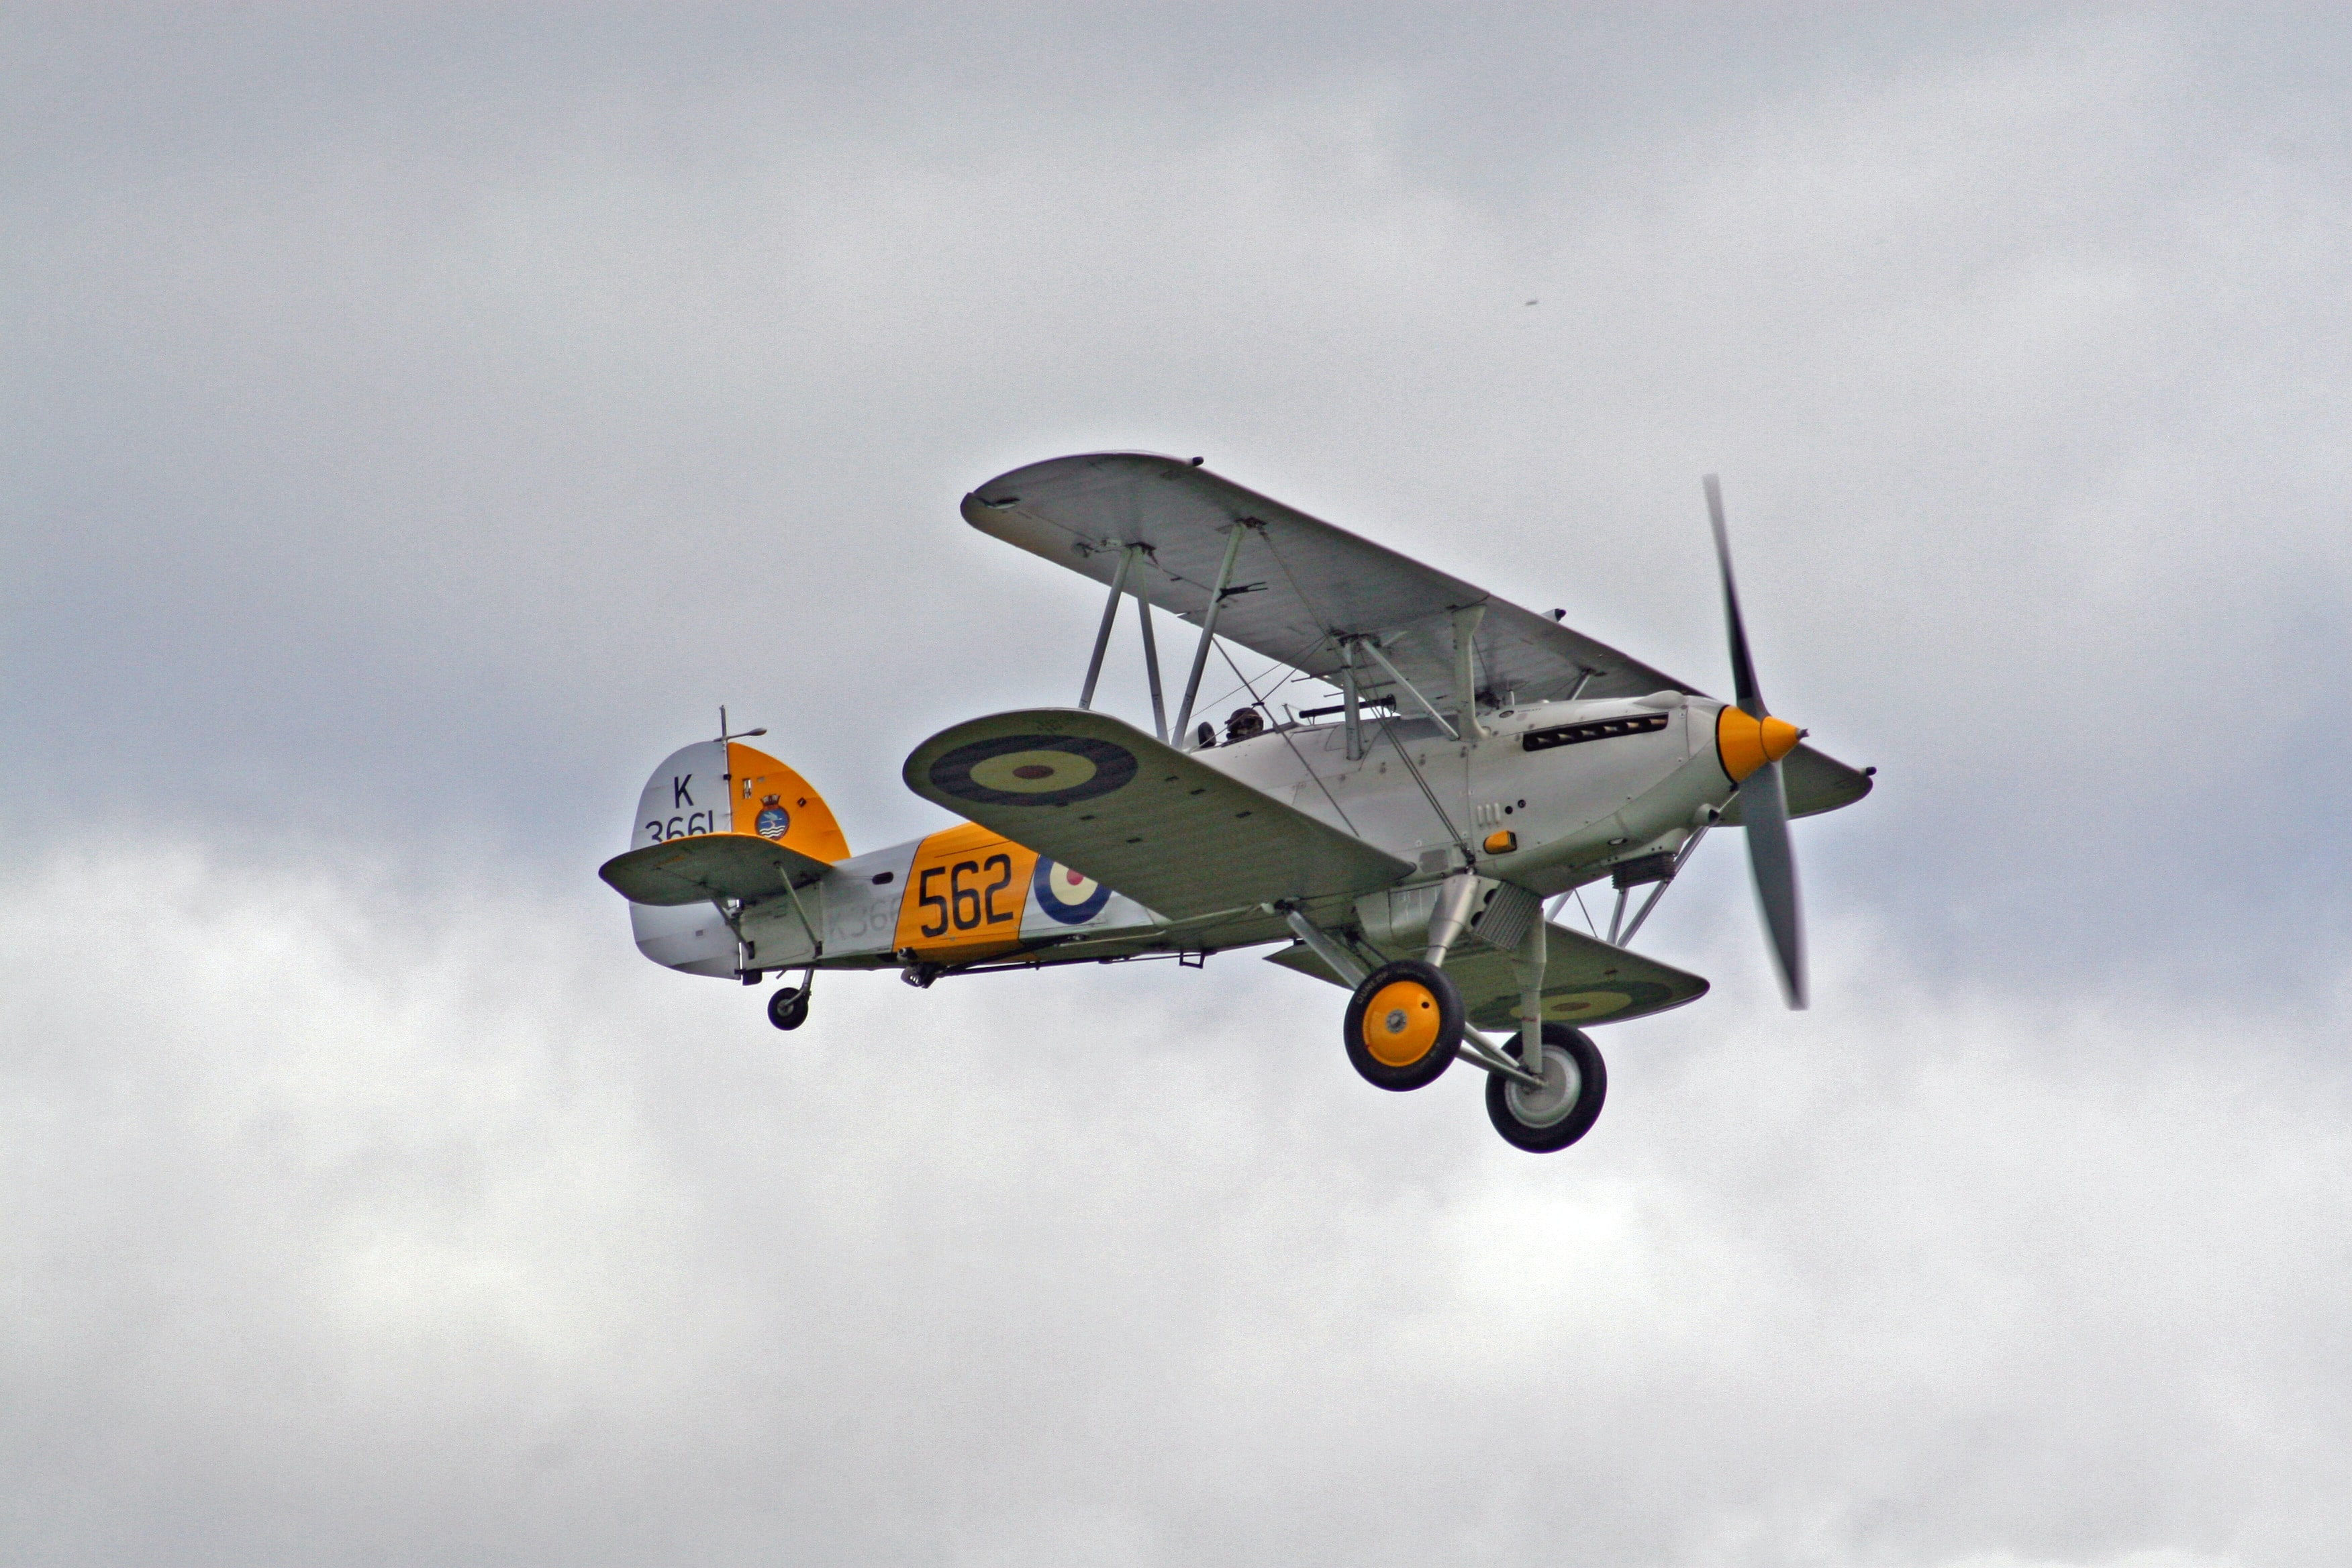 white and orange bi-plane in mid air